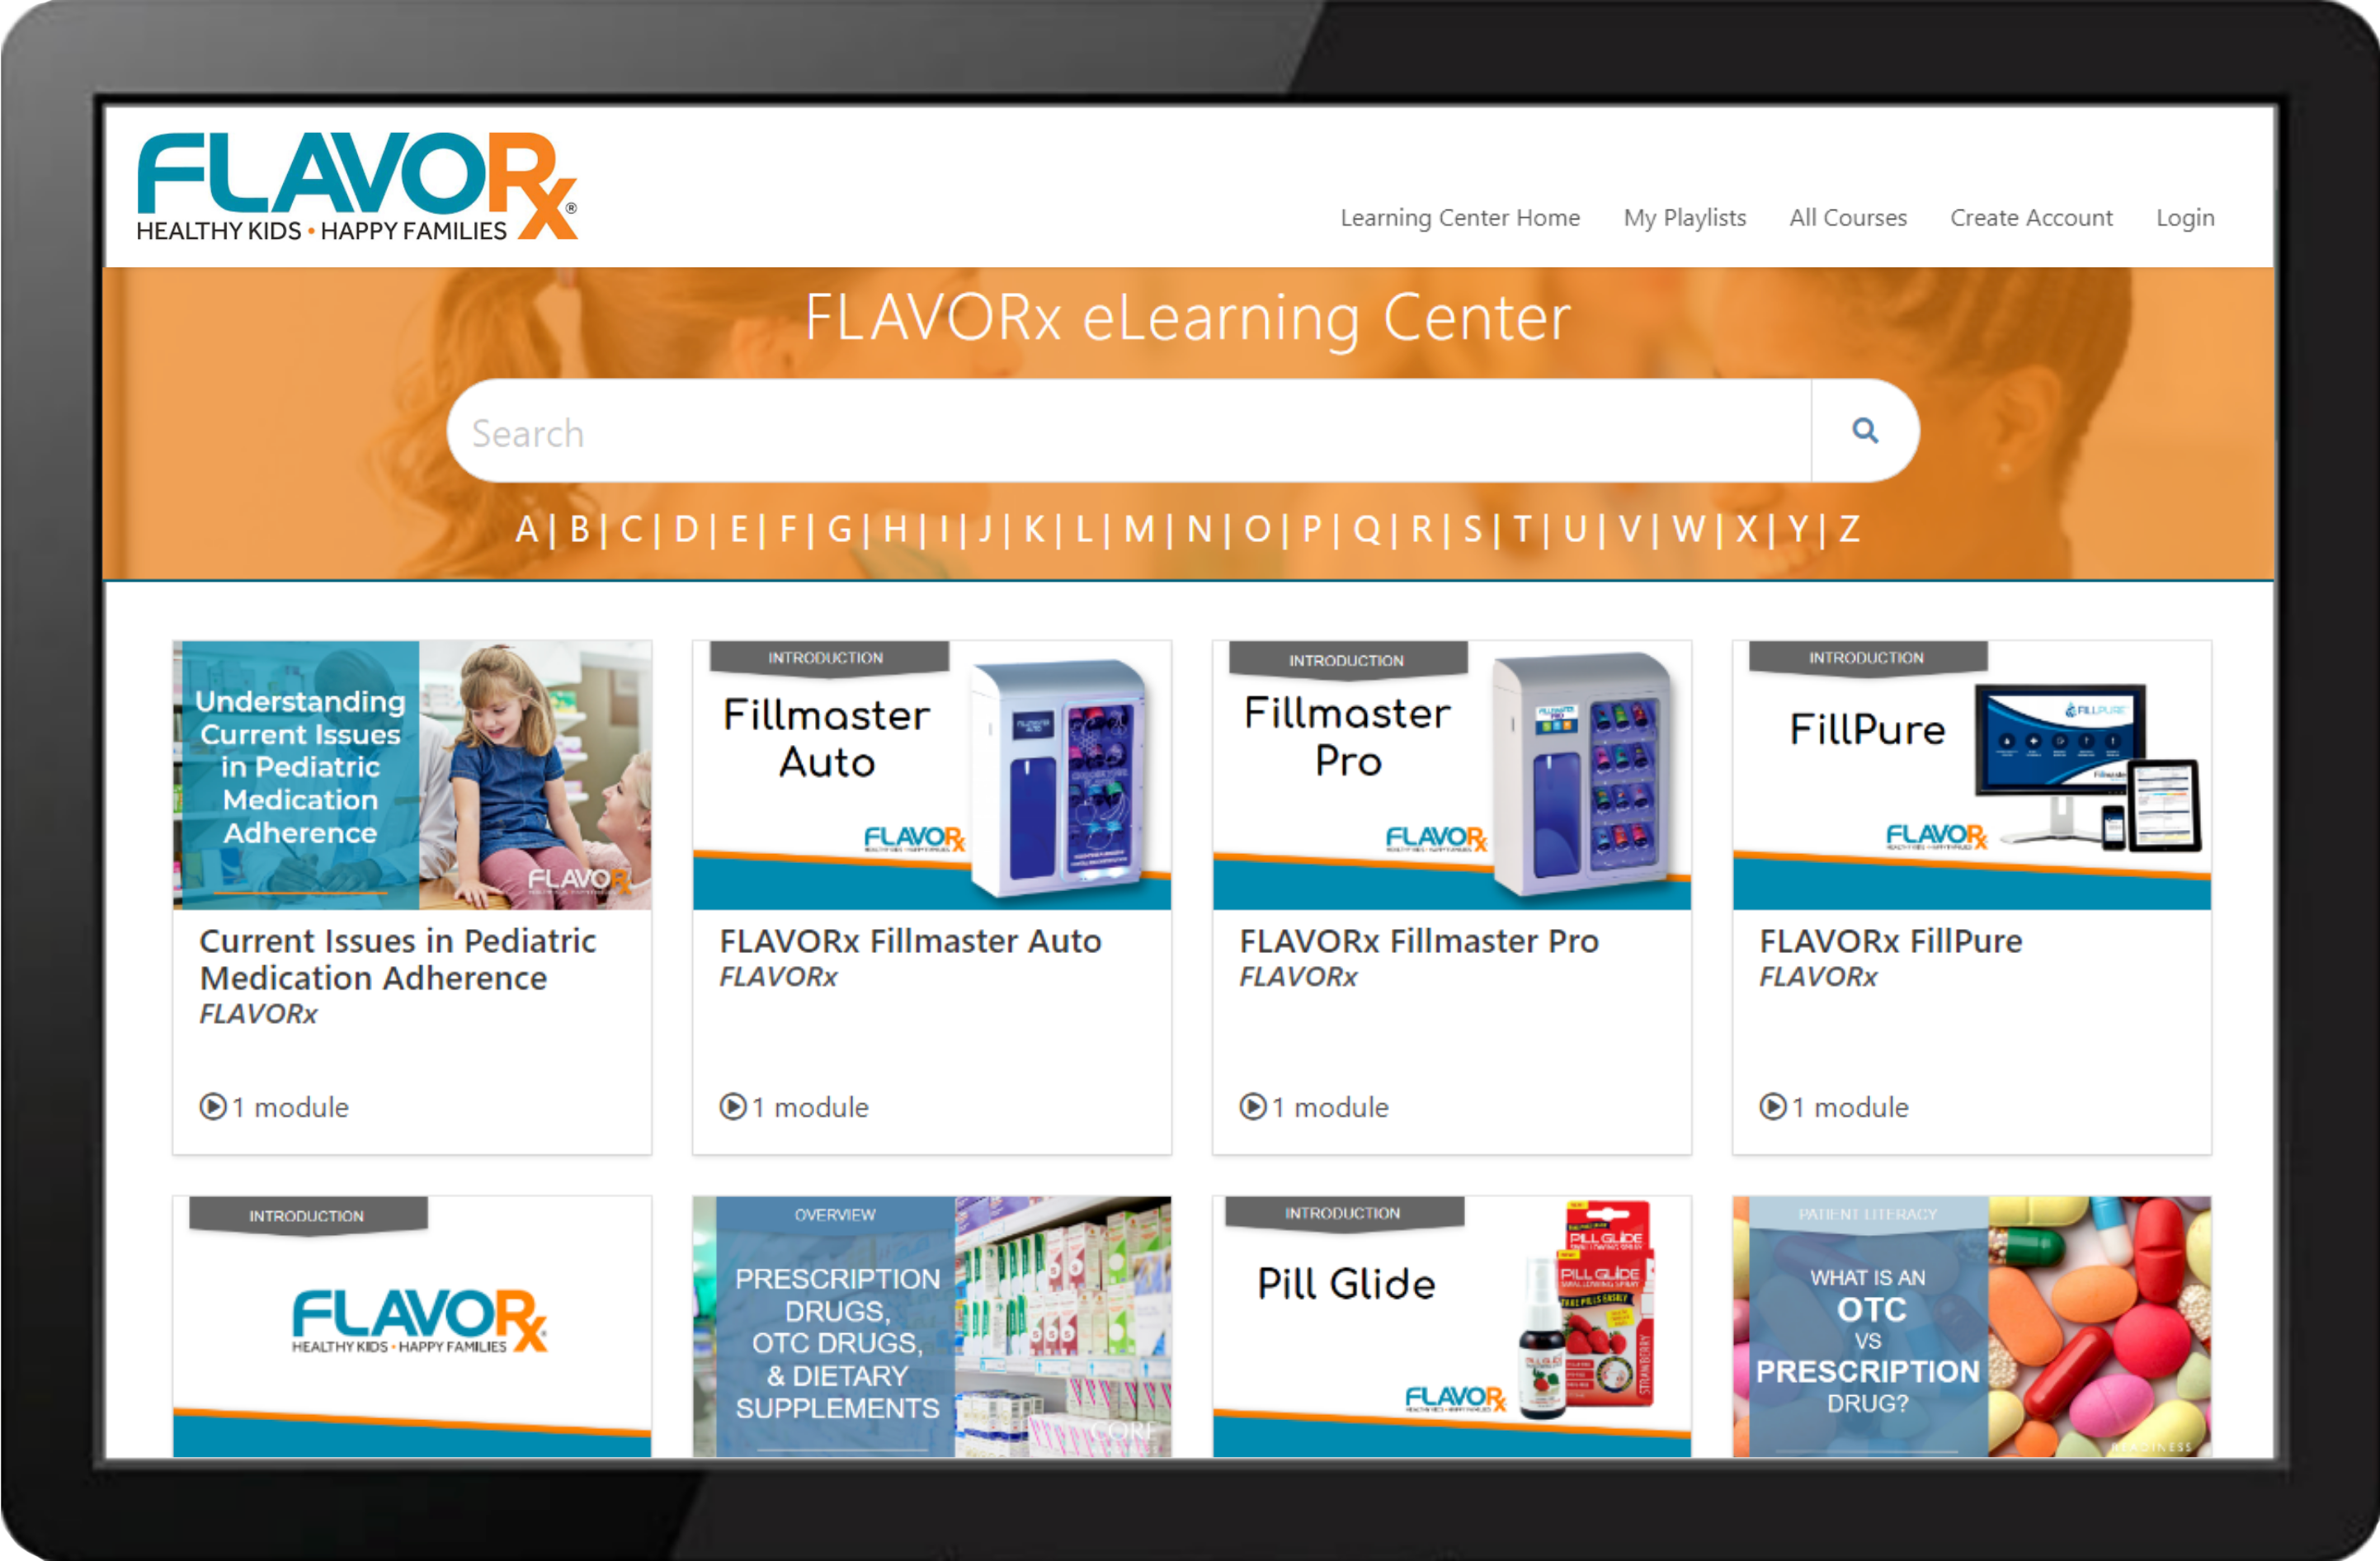 FLAVORx LearningCenter Example